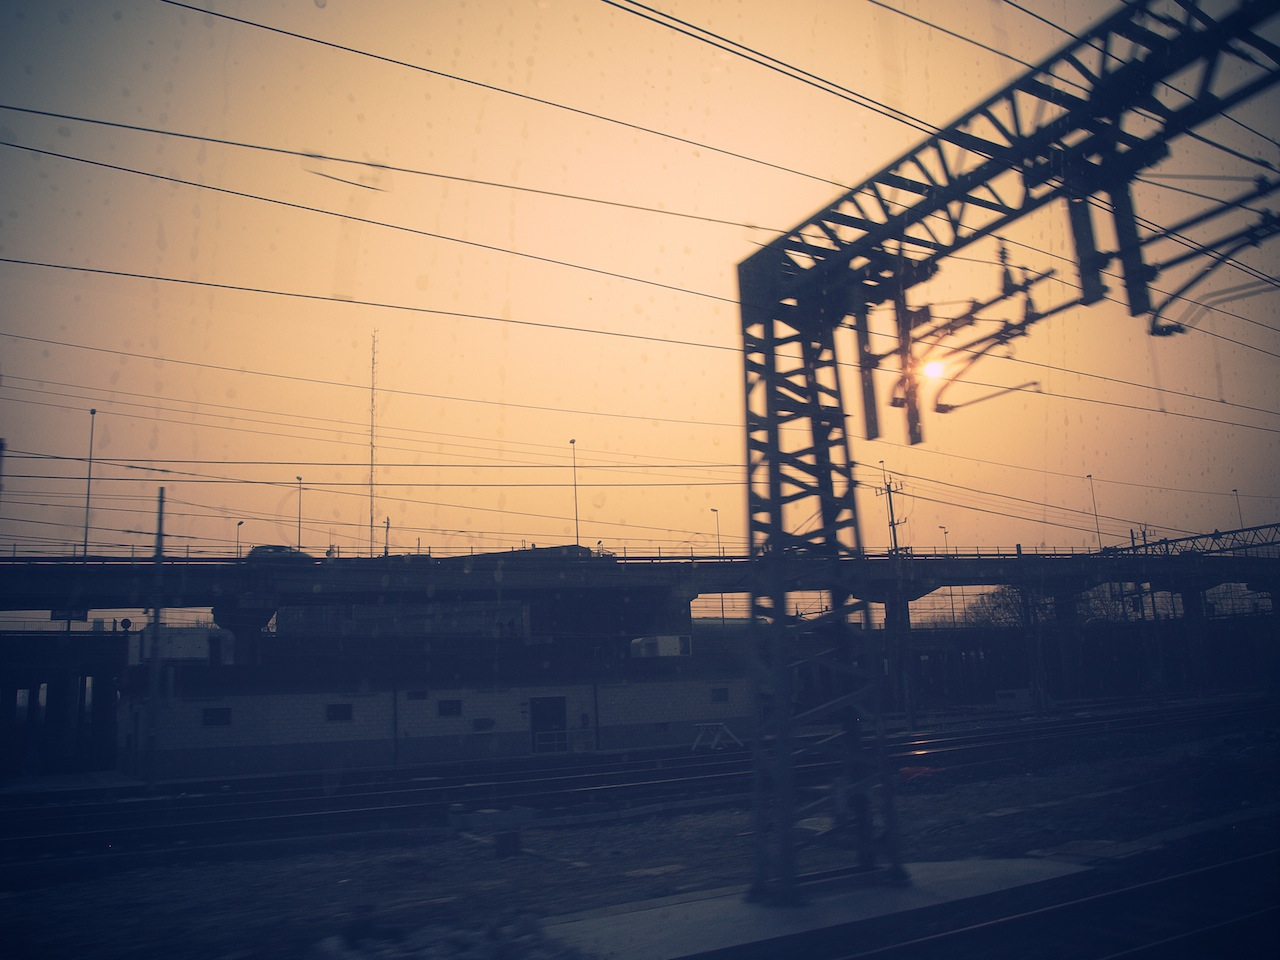 Train (To Venice  ) at Sunset  / Part of 'Trip To Italy' series by Geena Matuson @geenamatuson, 2011.